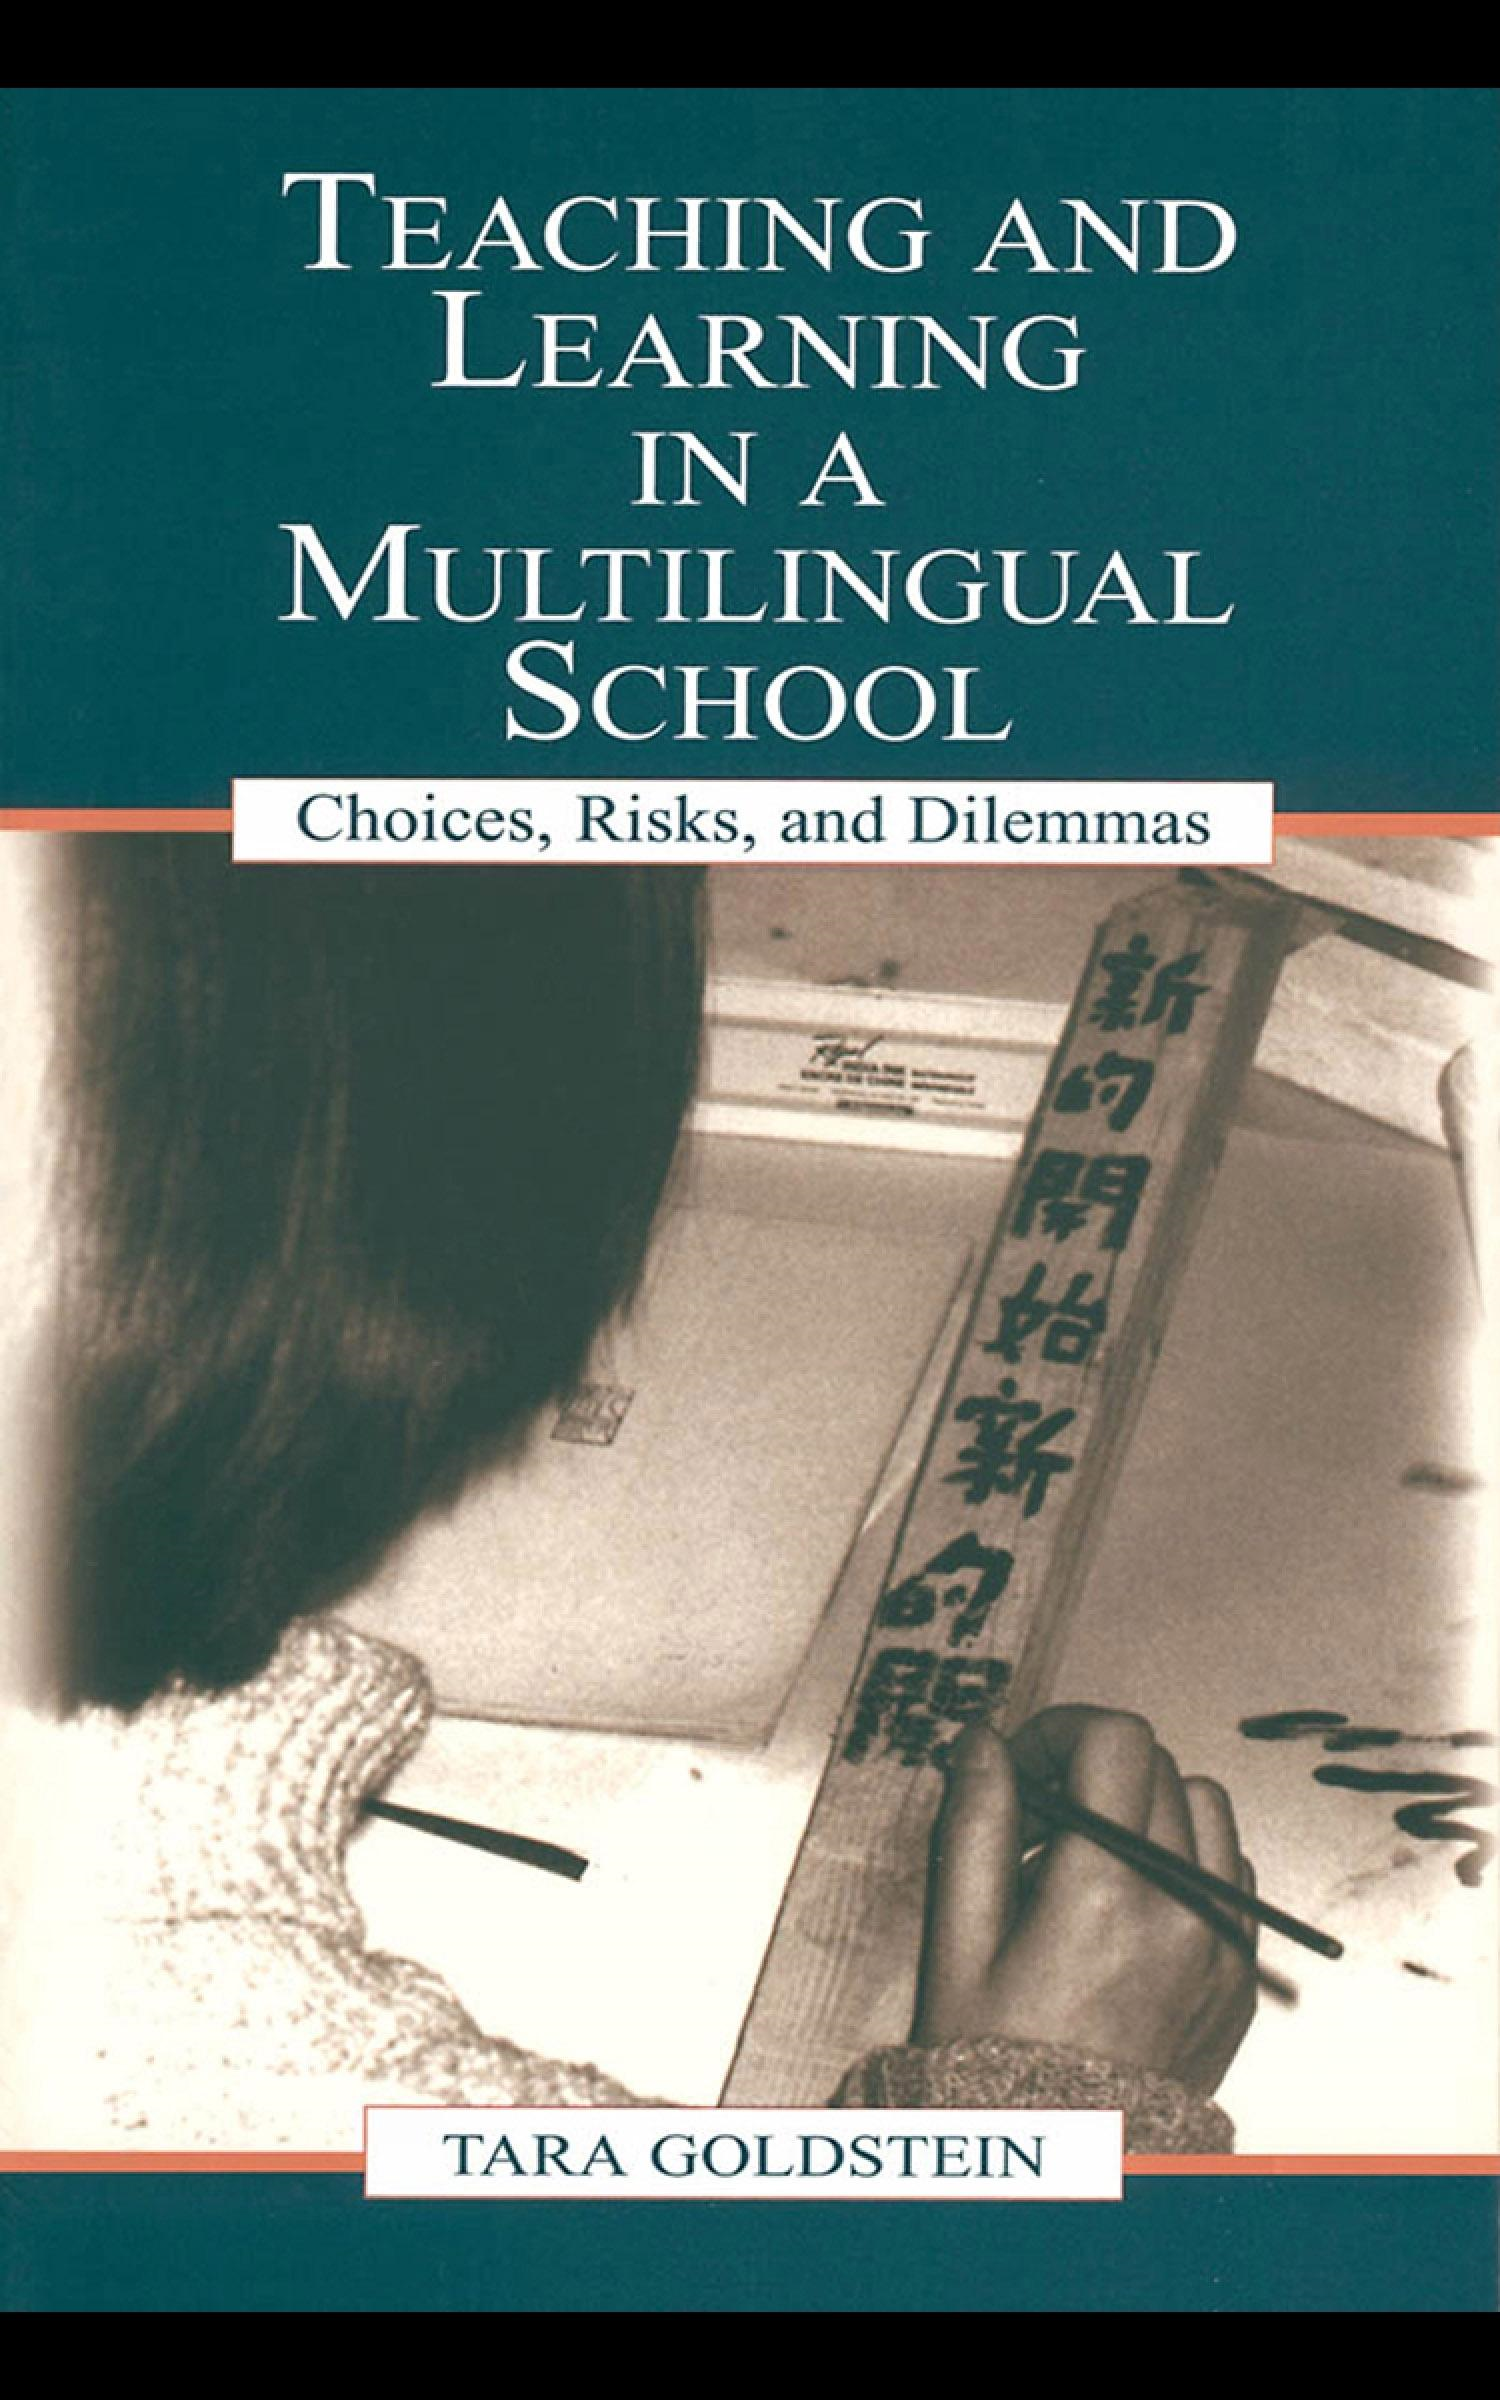 Teaching and Learning in a Multilingual School: Choices, Risks, and Dilemmas By: Tara Goldstein